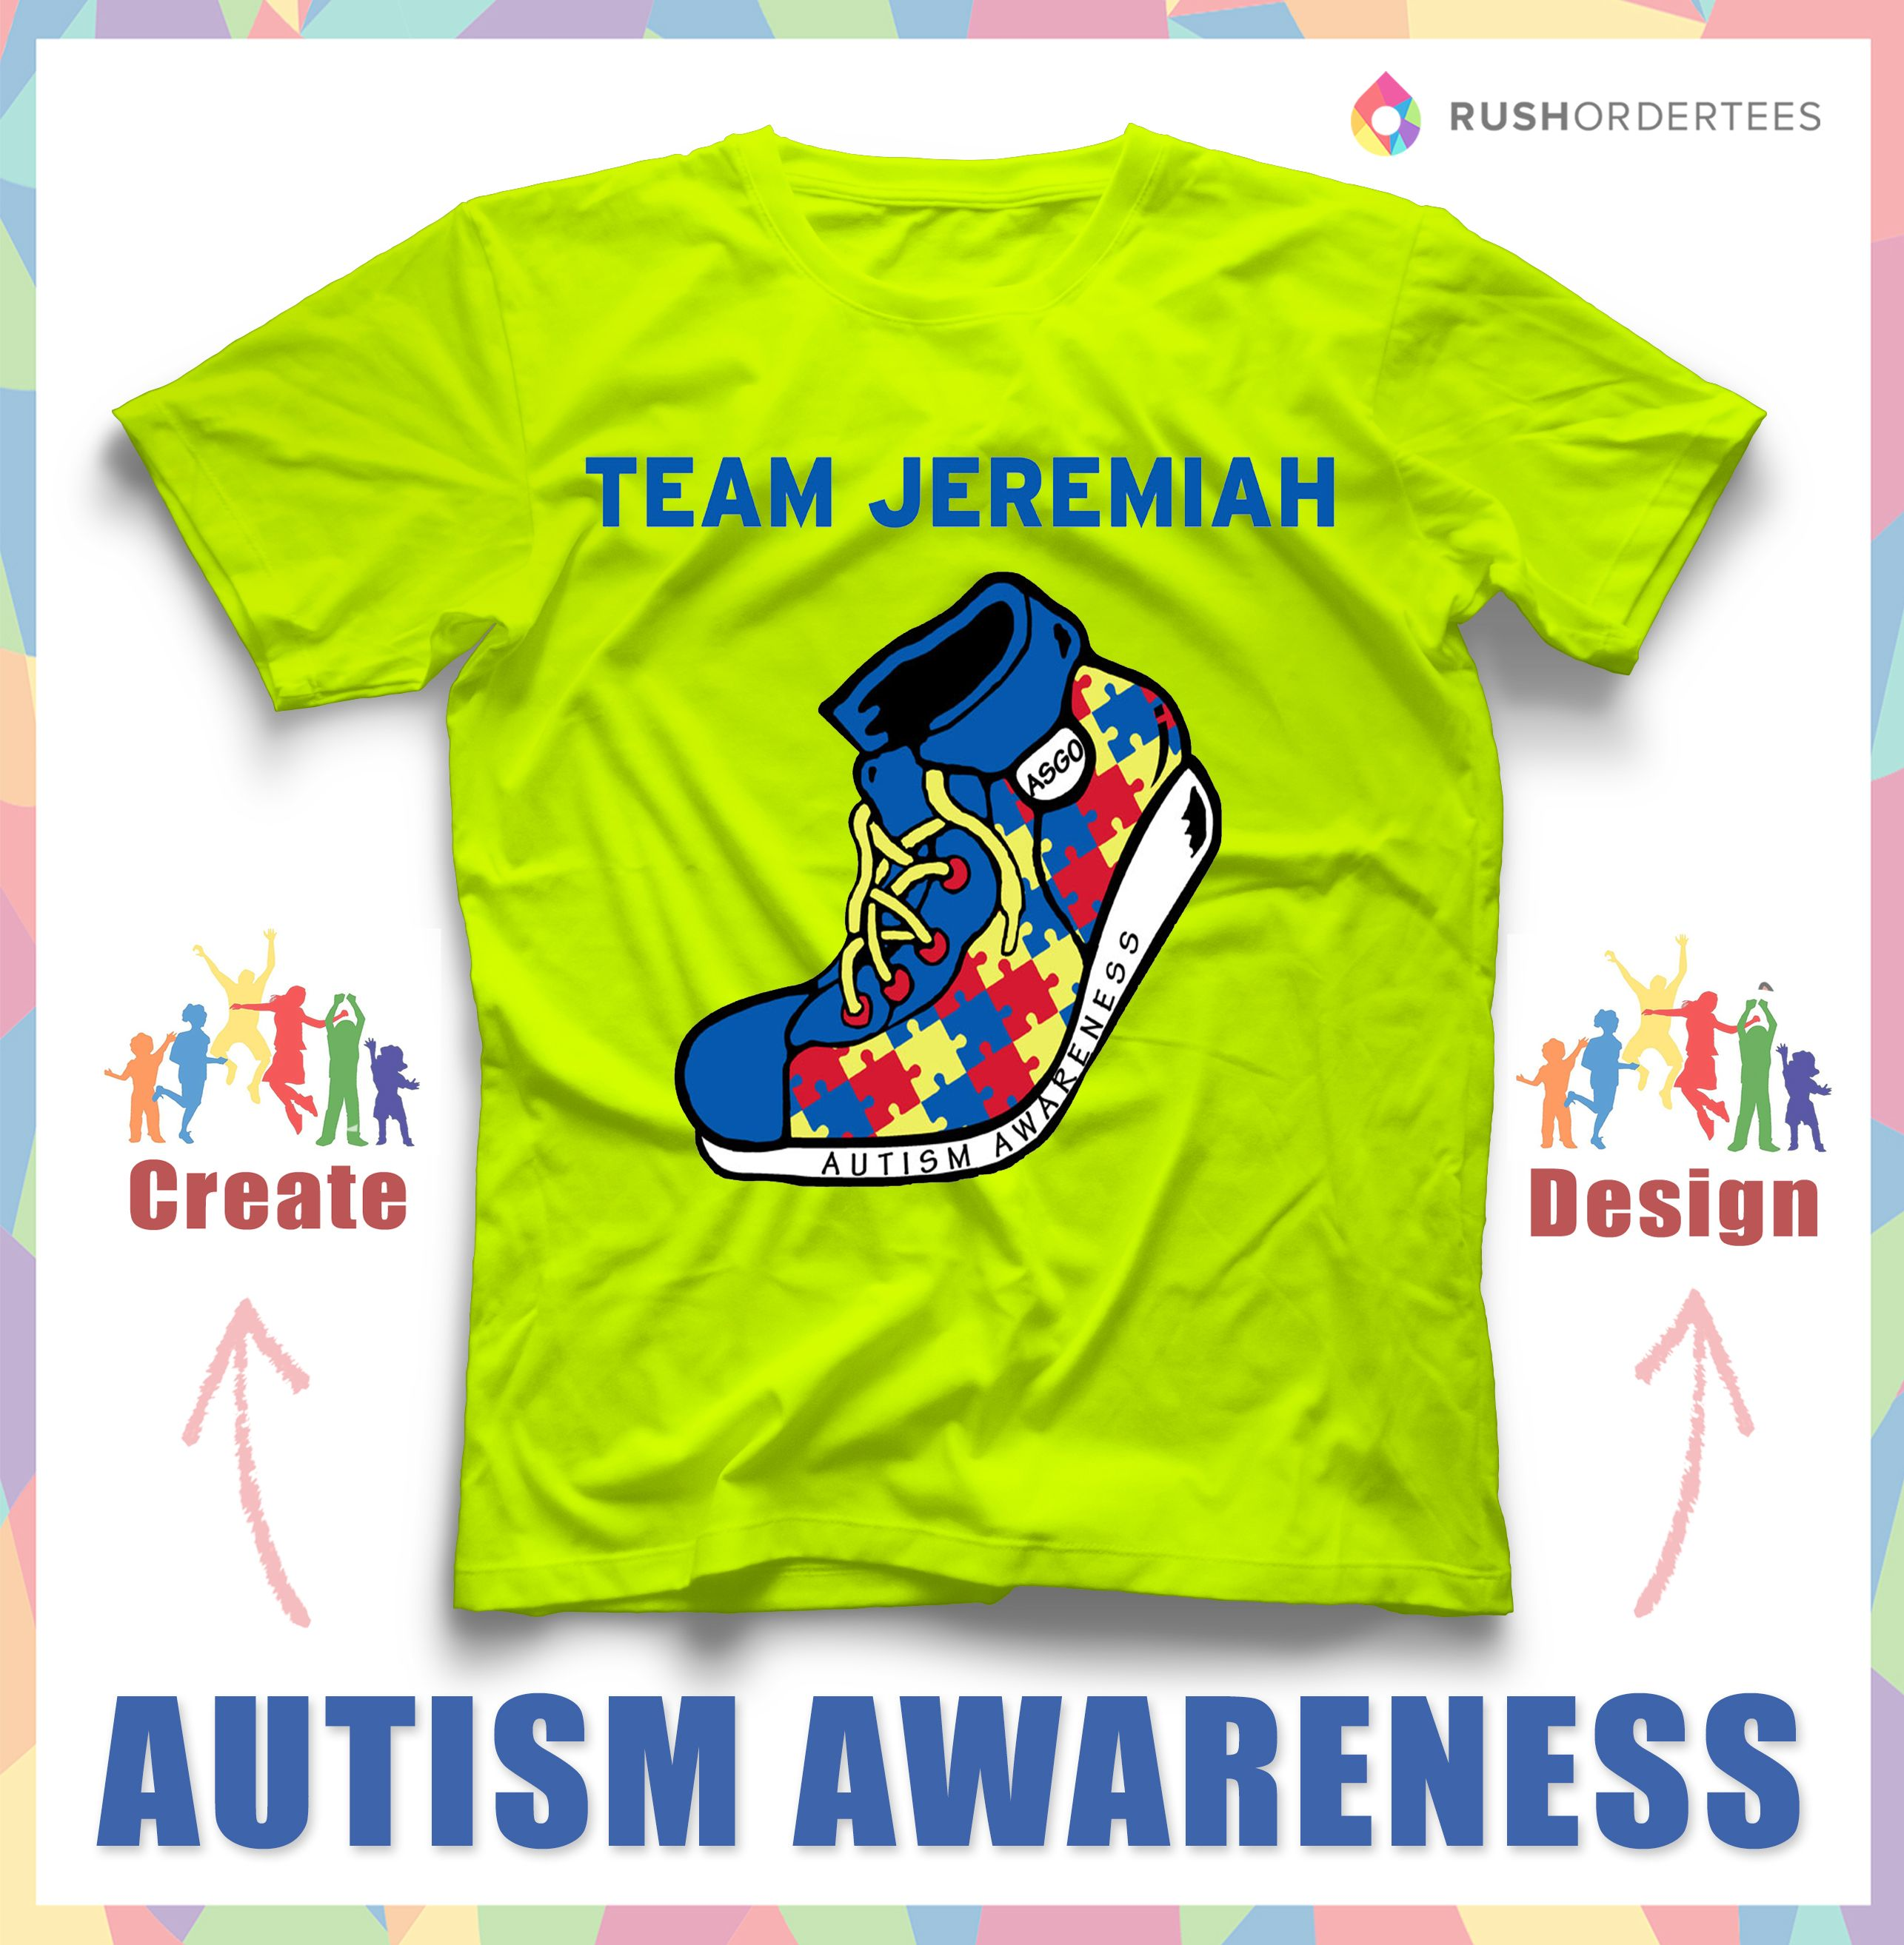 Autism Awareness Team Jeremiah Support autism awareness by